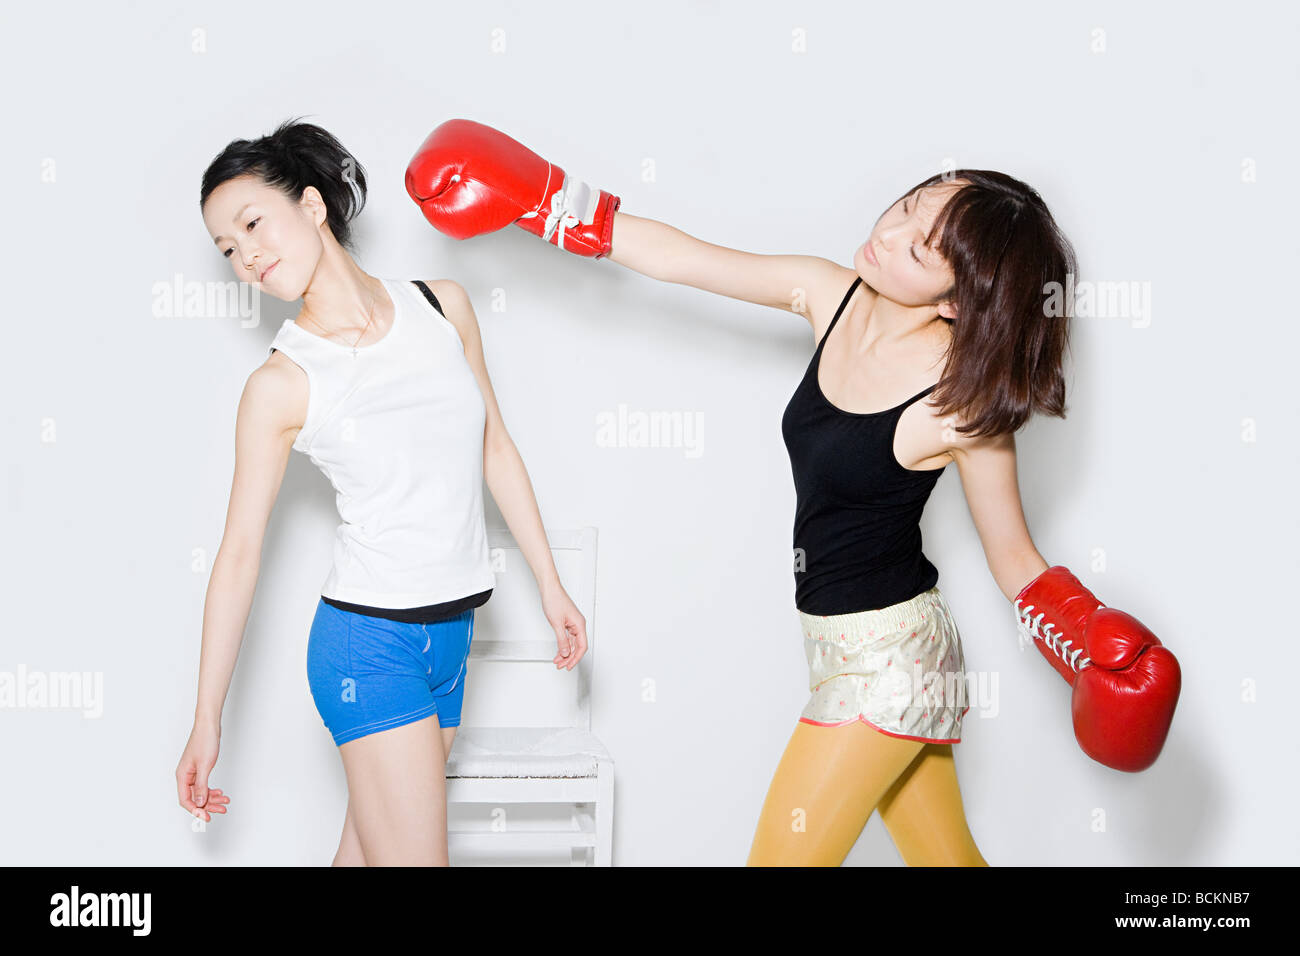 Young women boxing - Stock Image